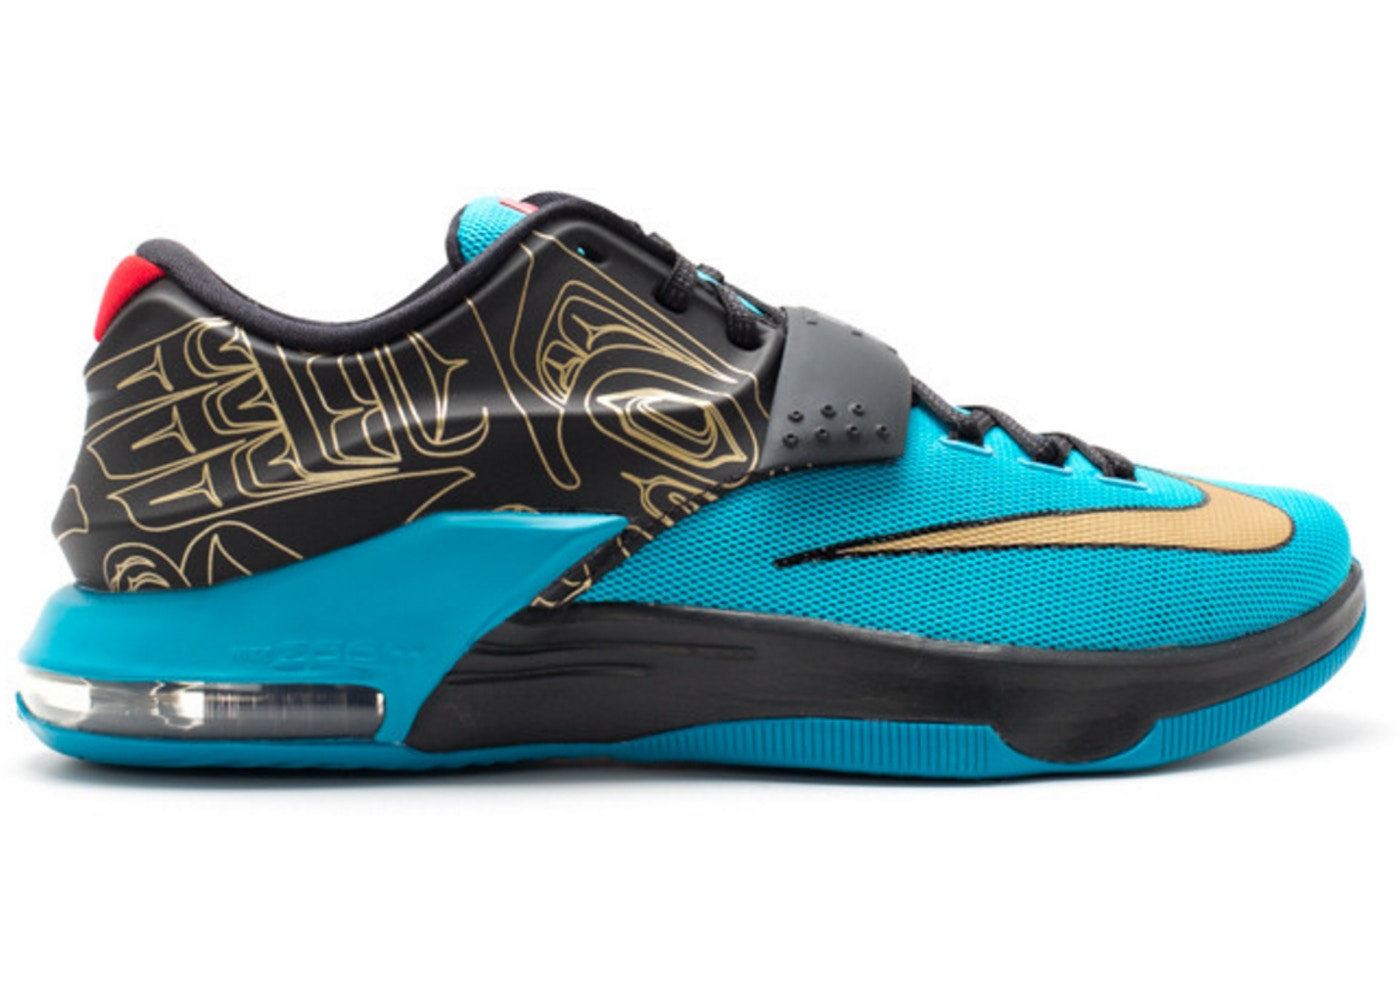 new products e154f 8213c Nike KD 7 Shoes - Average Sale Price